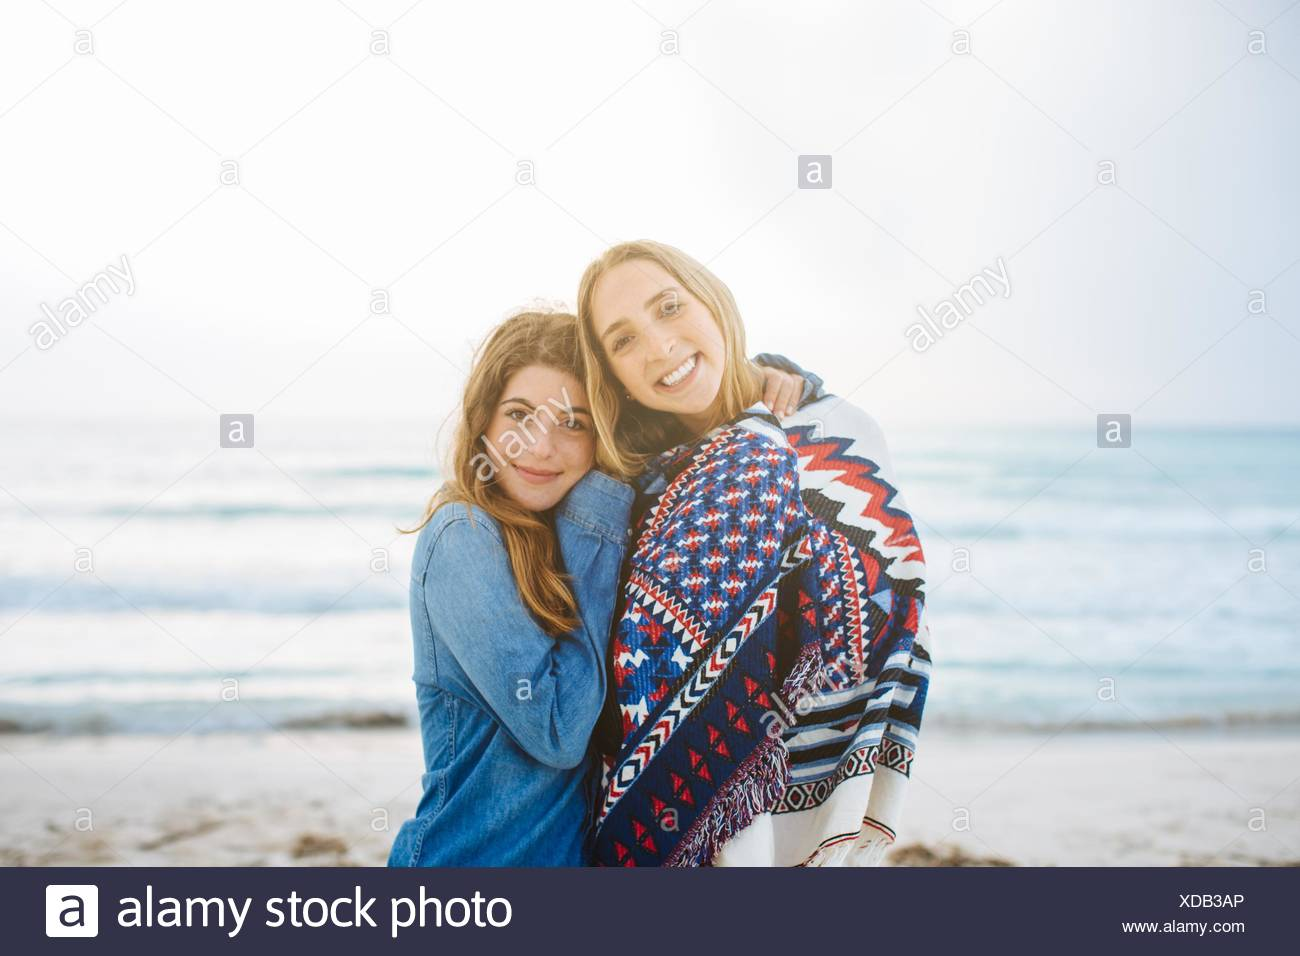 Portrait of two young female friends hugging on beach - Stock Image